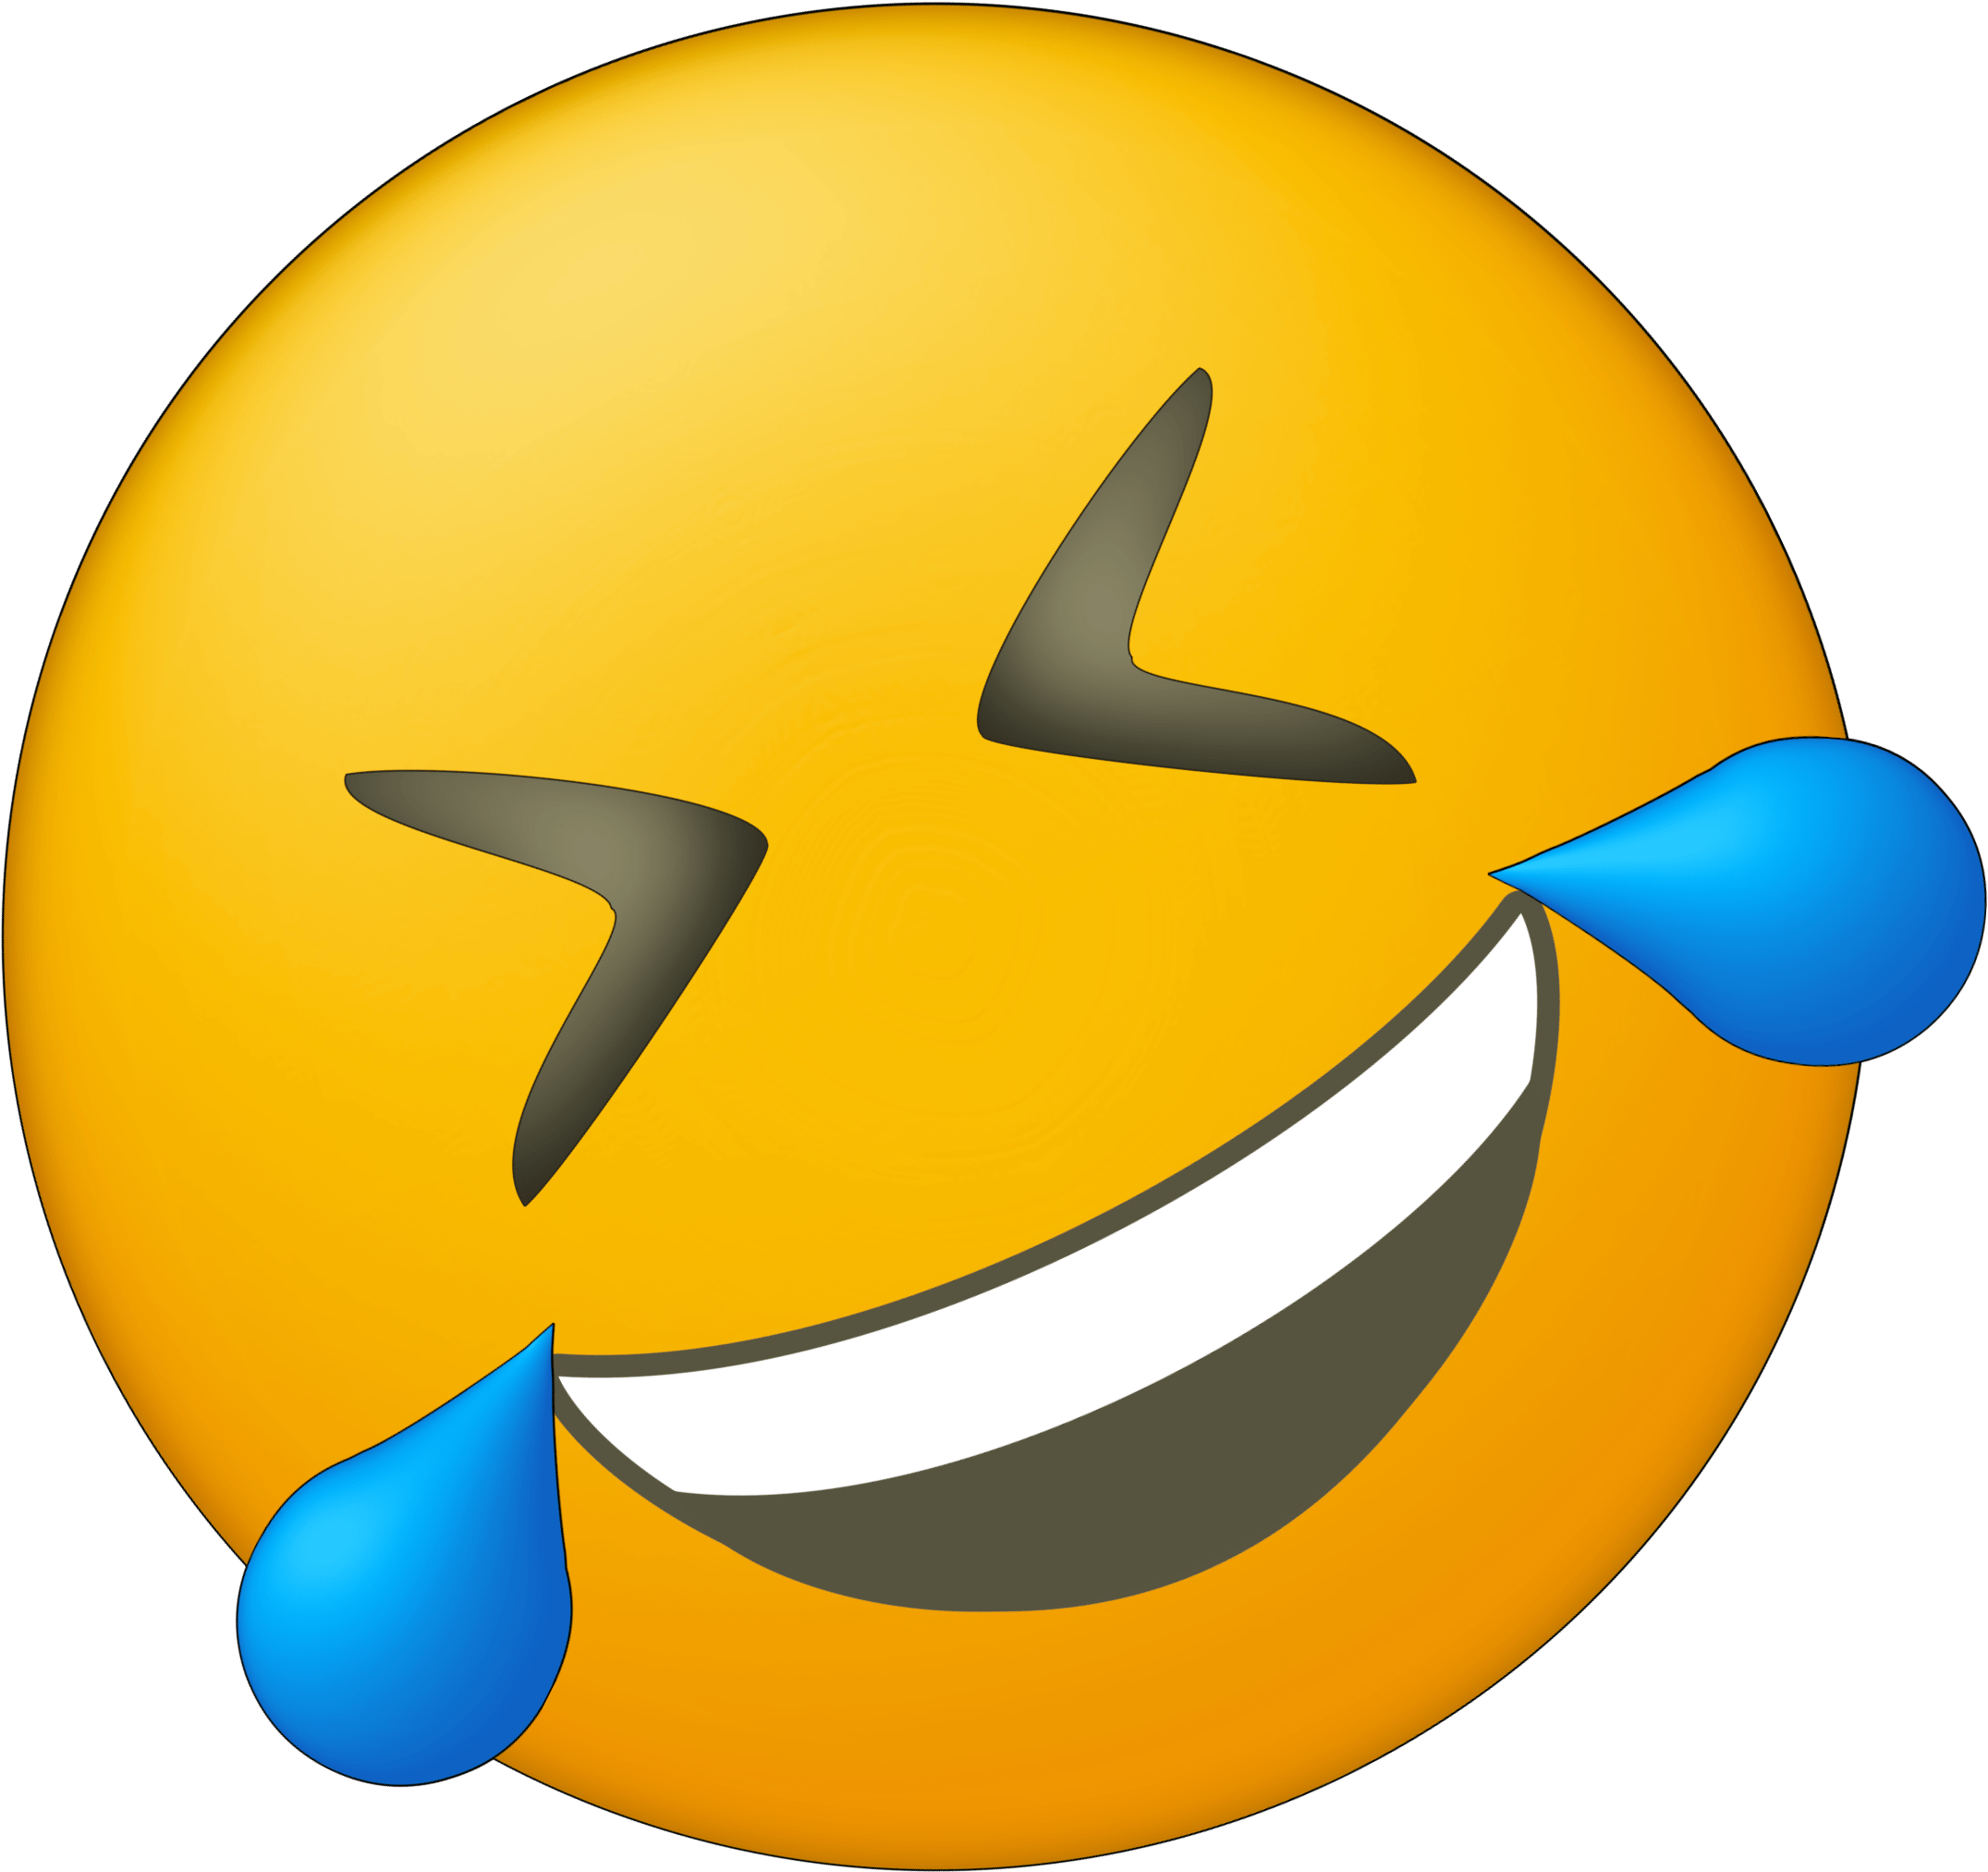 picture relating to Printable Emoticons Free named Emoji Faces Free of charge Printables Paper Path Layout - Loss of life Emoji